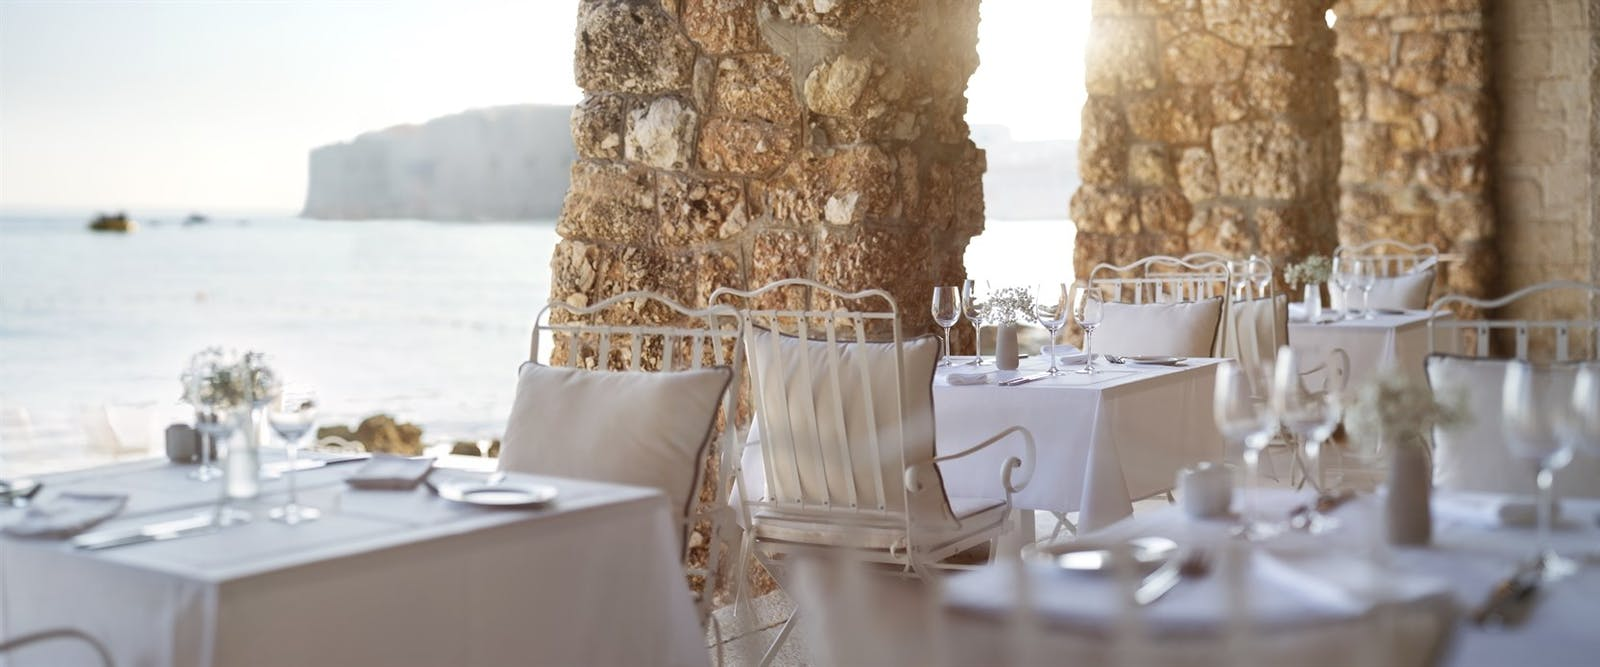 Beach Restaurant at Hotel Excelsior, Dubrovnik, Croatia